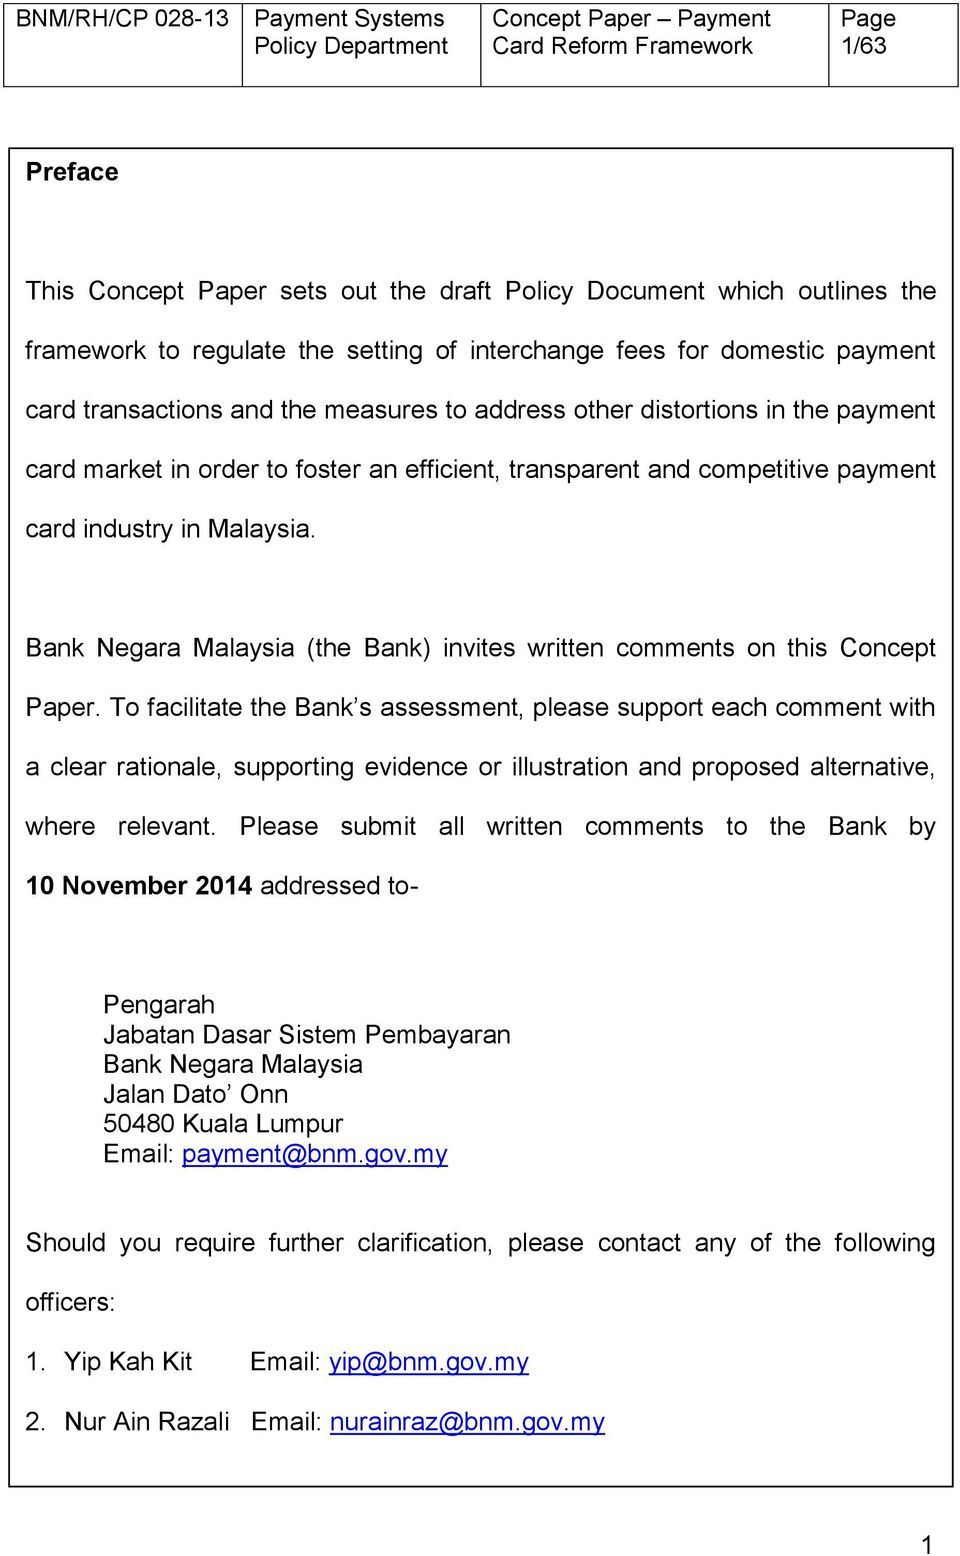 Bank Negara Malaysia (the Bank) invites written comments on this Concept Paper.